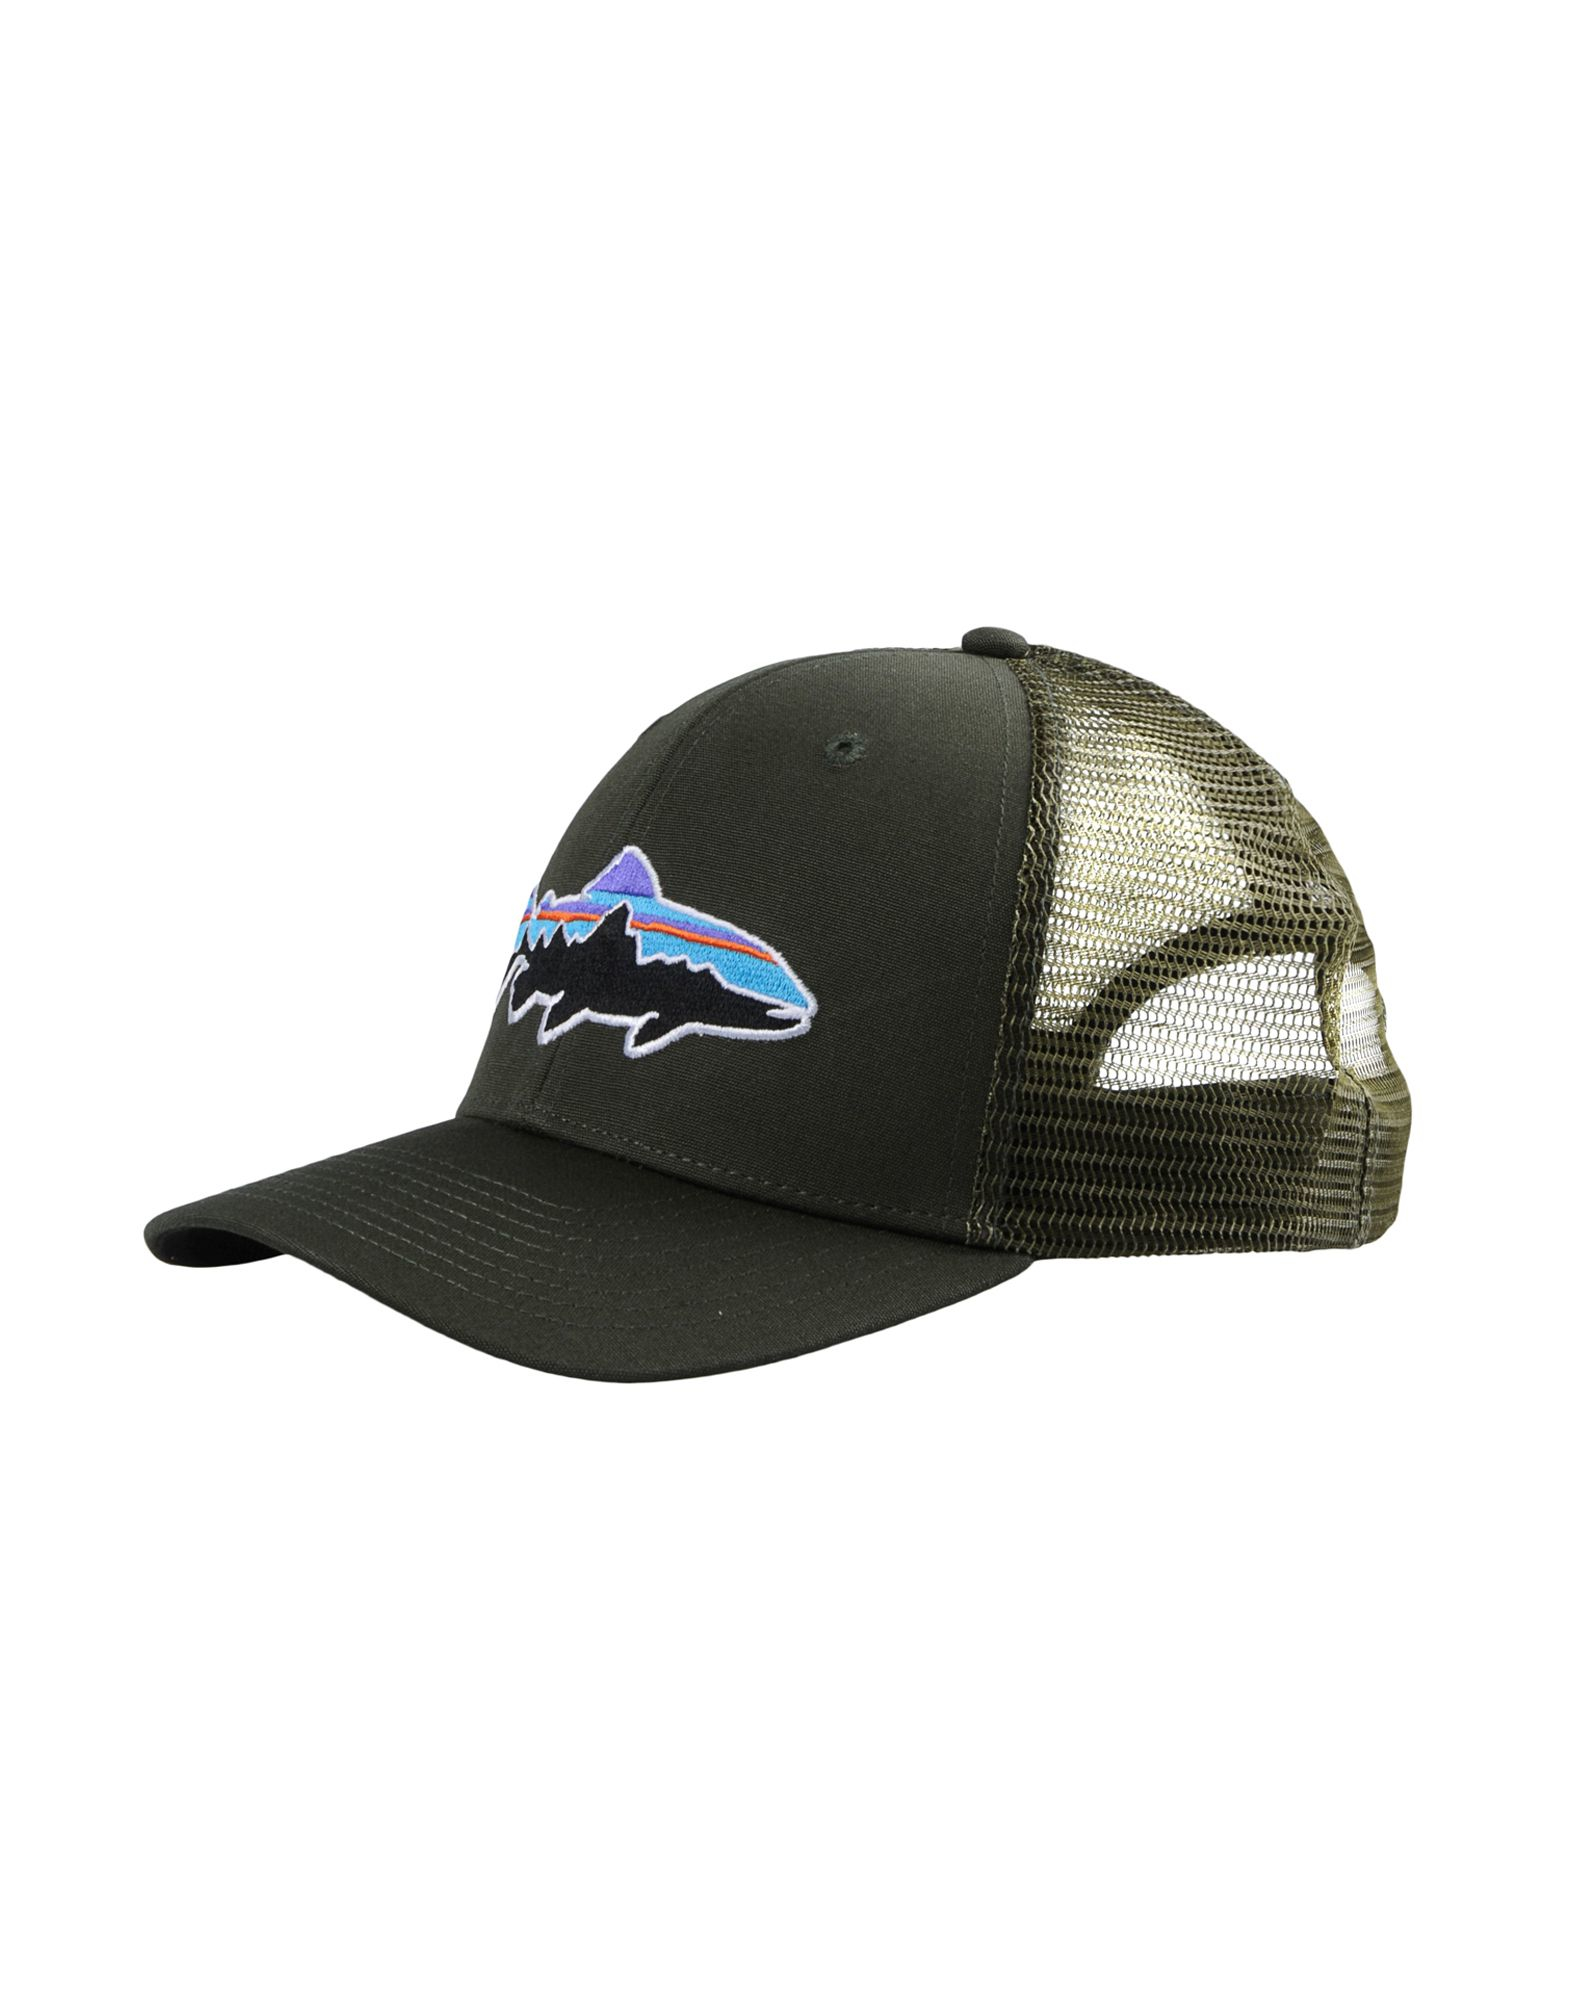 736f38e542d Patagonia Hat in Green for Men - Lyst